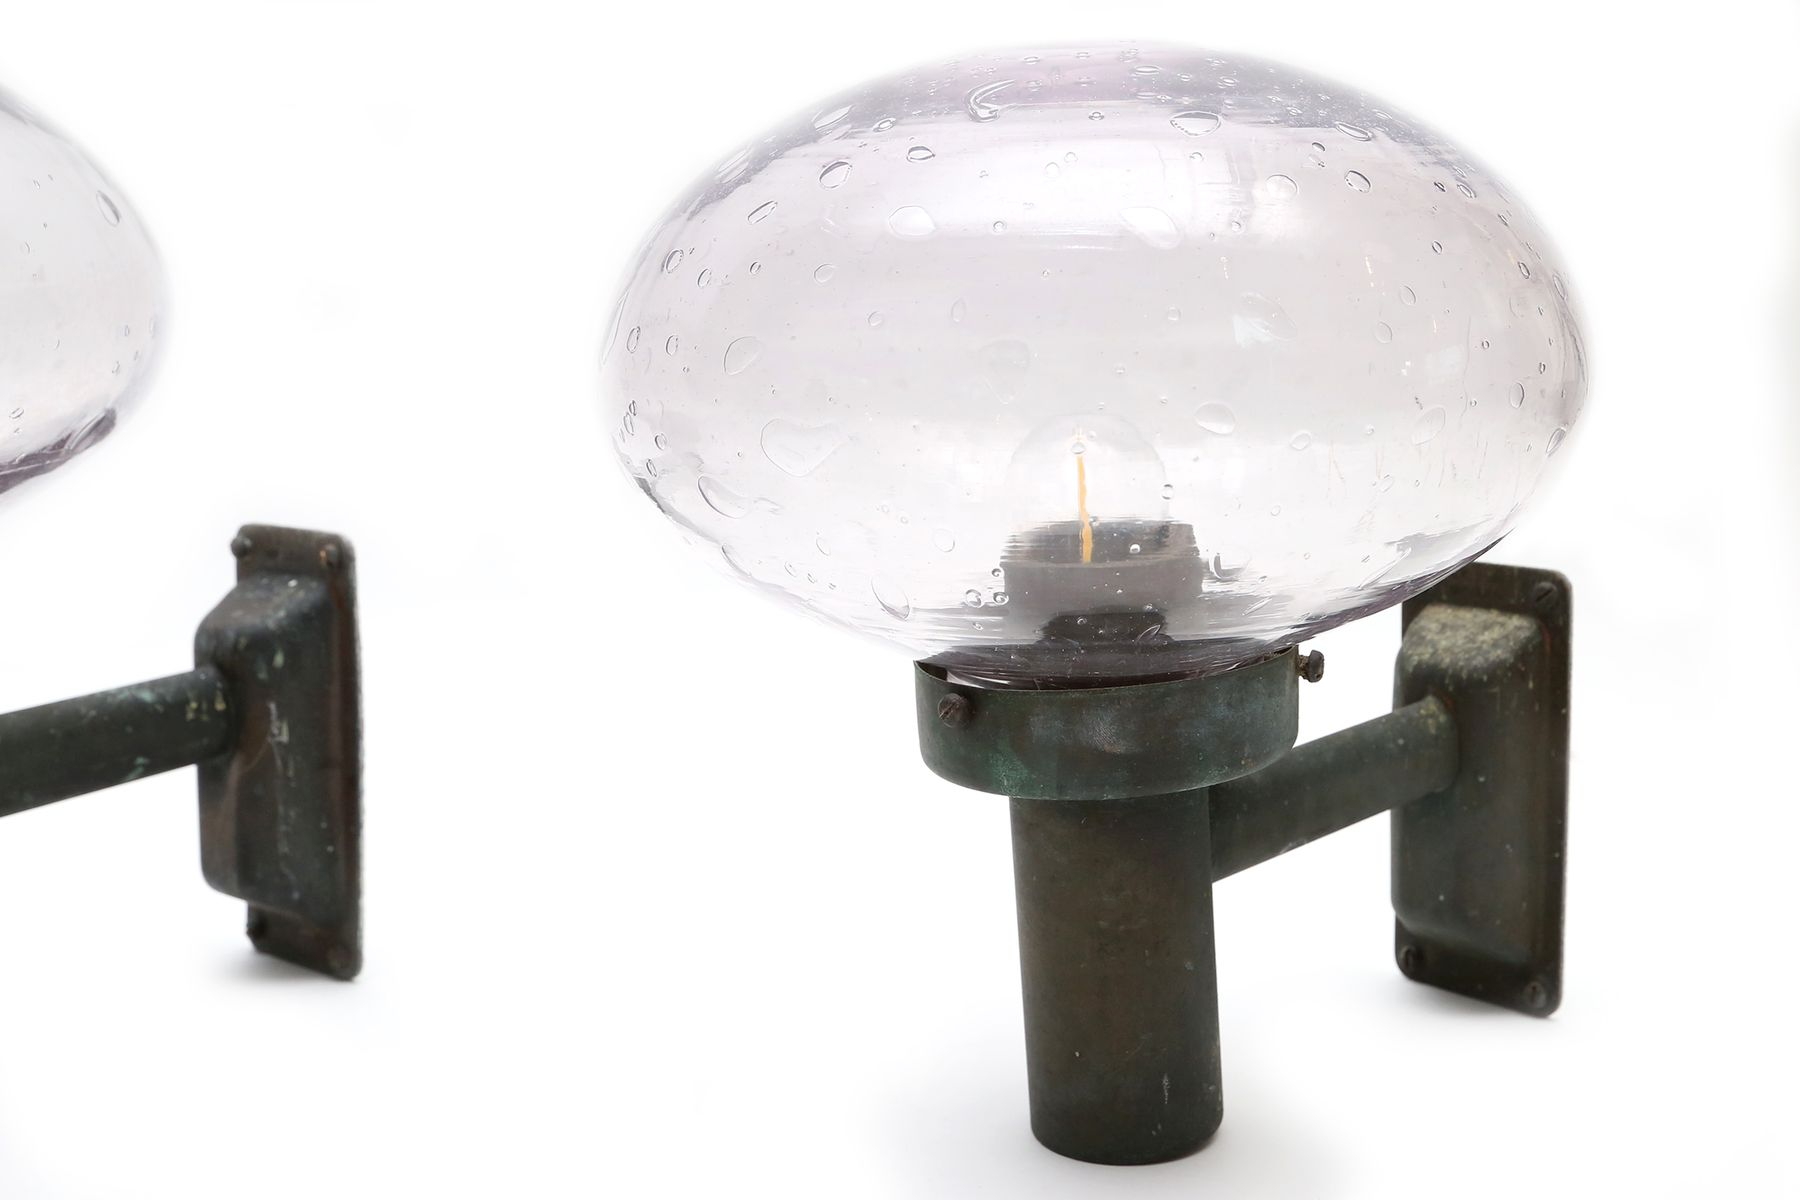 Vintage Glass Wall Lamps : Vintage Handblown Glass Wall Lamps, Set of 4 for sale at Pamono